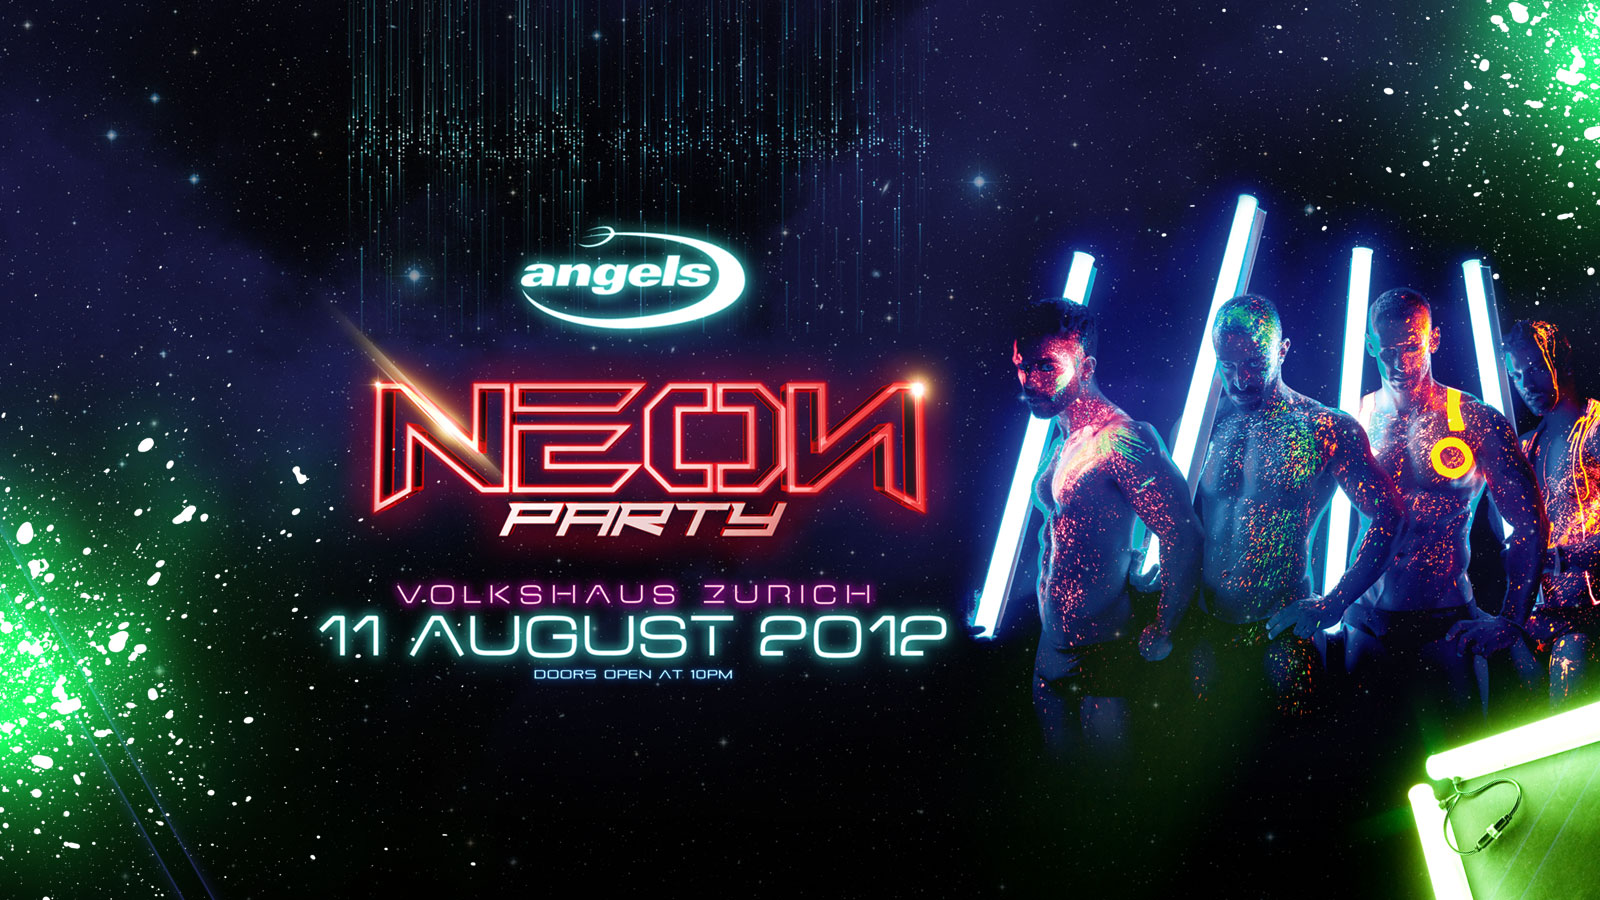 Neon Party Wallpaper